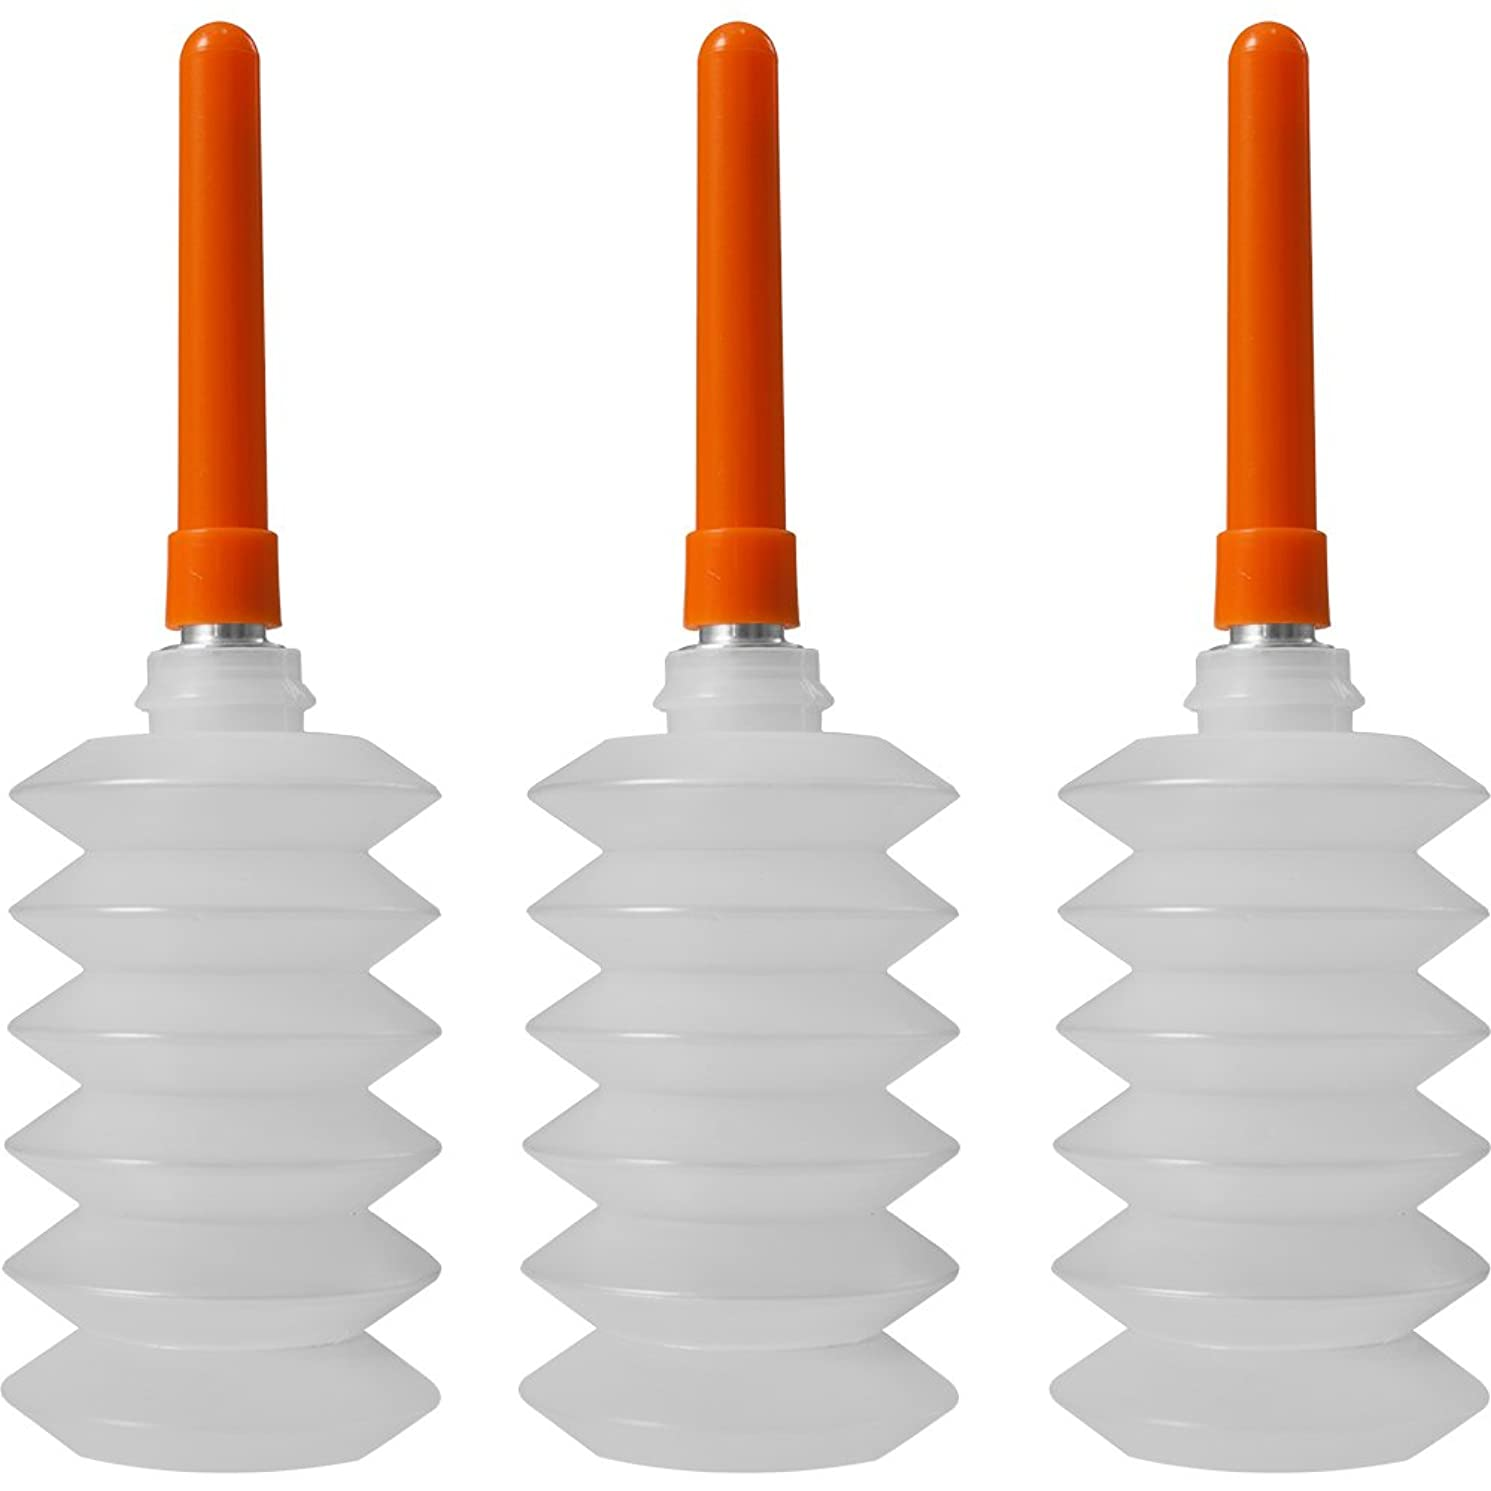 Glue Injector - 3 Pack by Peachtree Woodworking